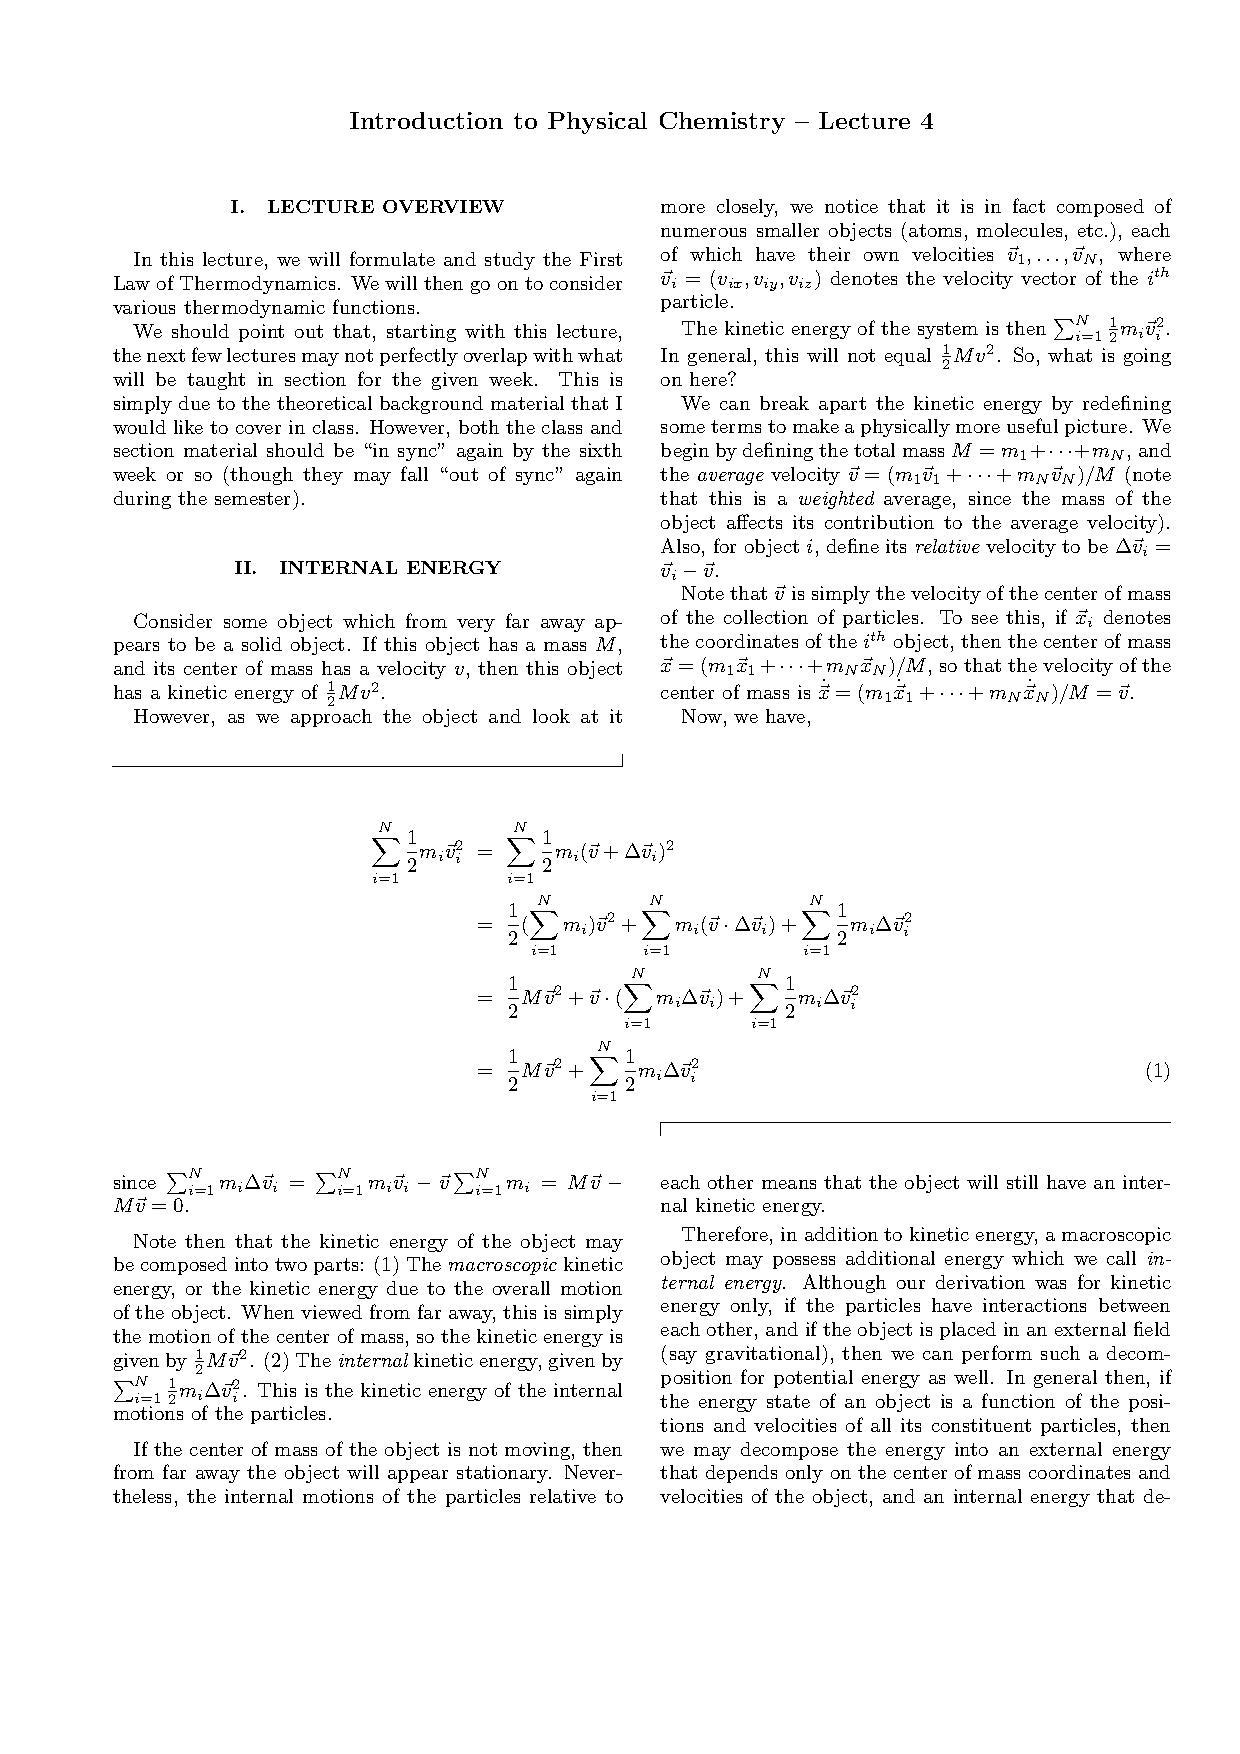 File:Introduction to Physical Chemistry Lecture 4 pdf - Wikimedia